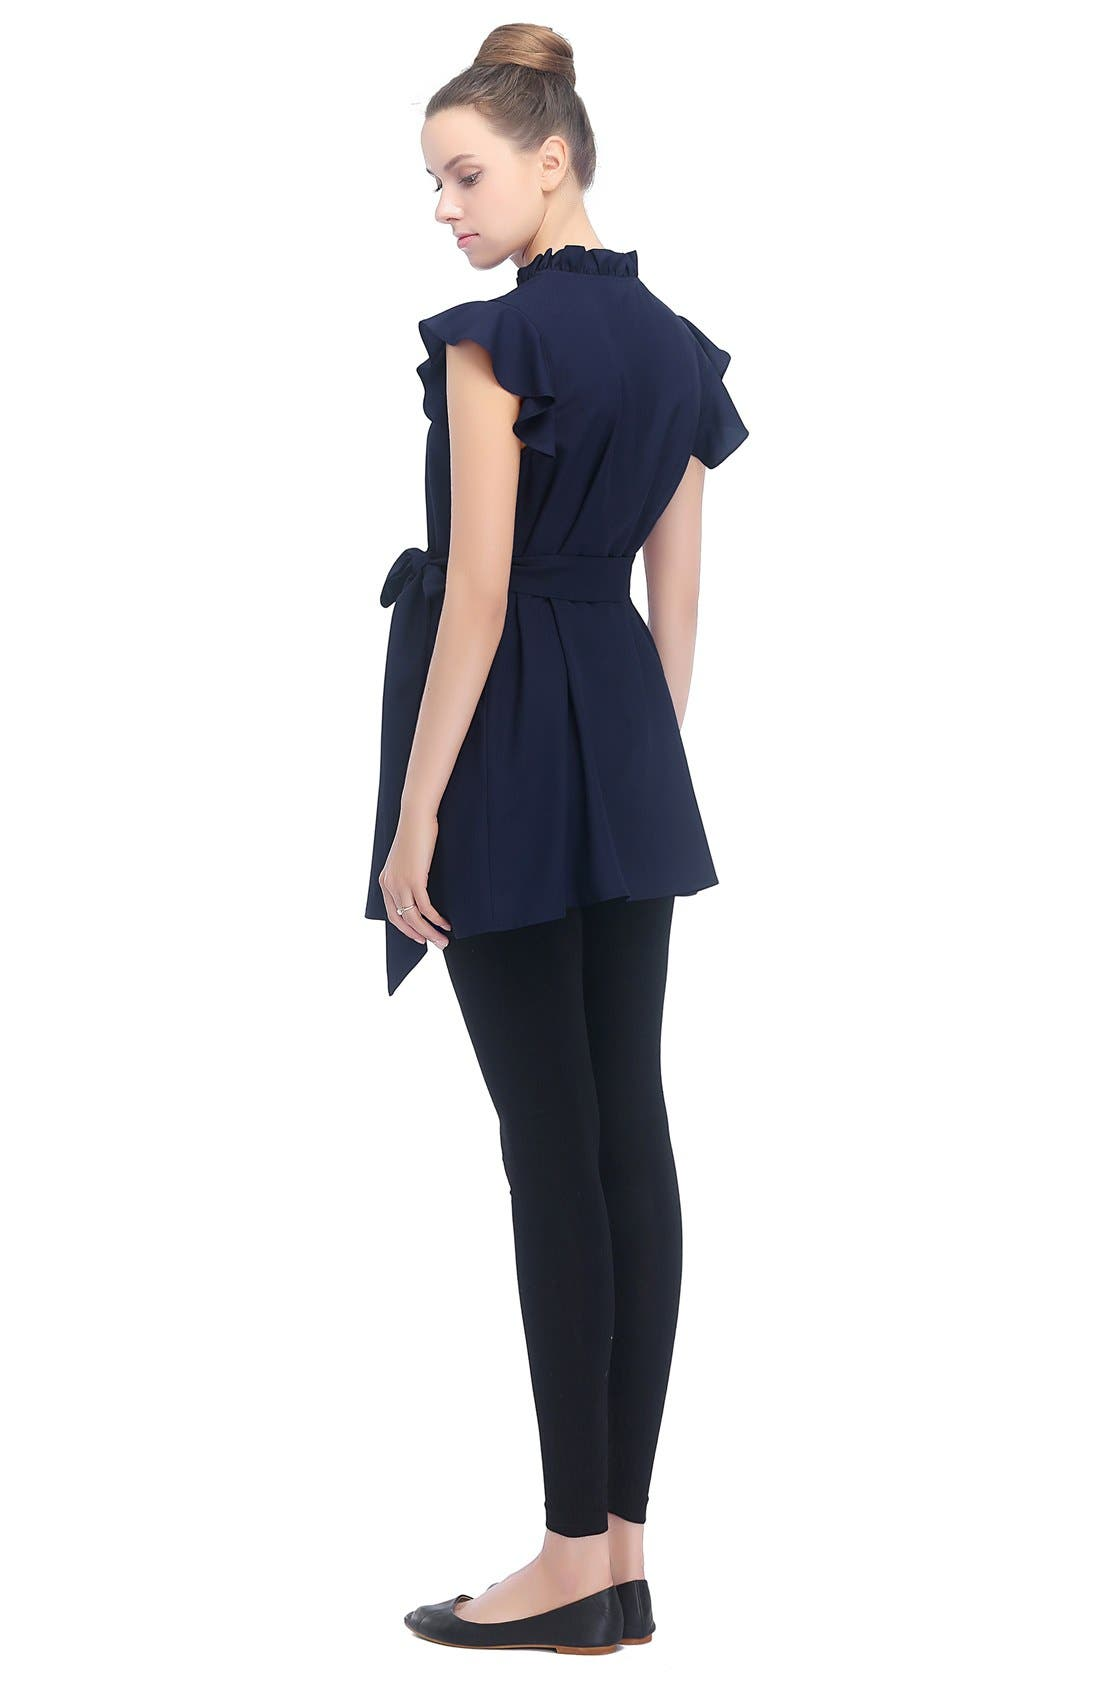 KIMI AND KAI, Karlena Flutter Sleeve Belted Maternity Top, Alternate thumbnail 3, color, NAVY